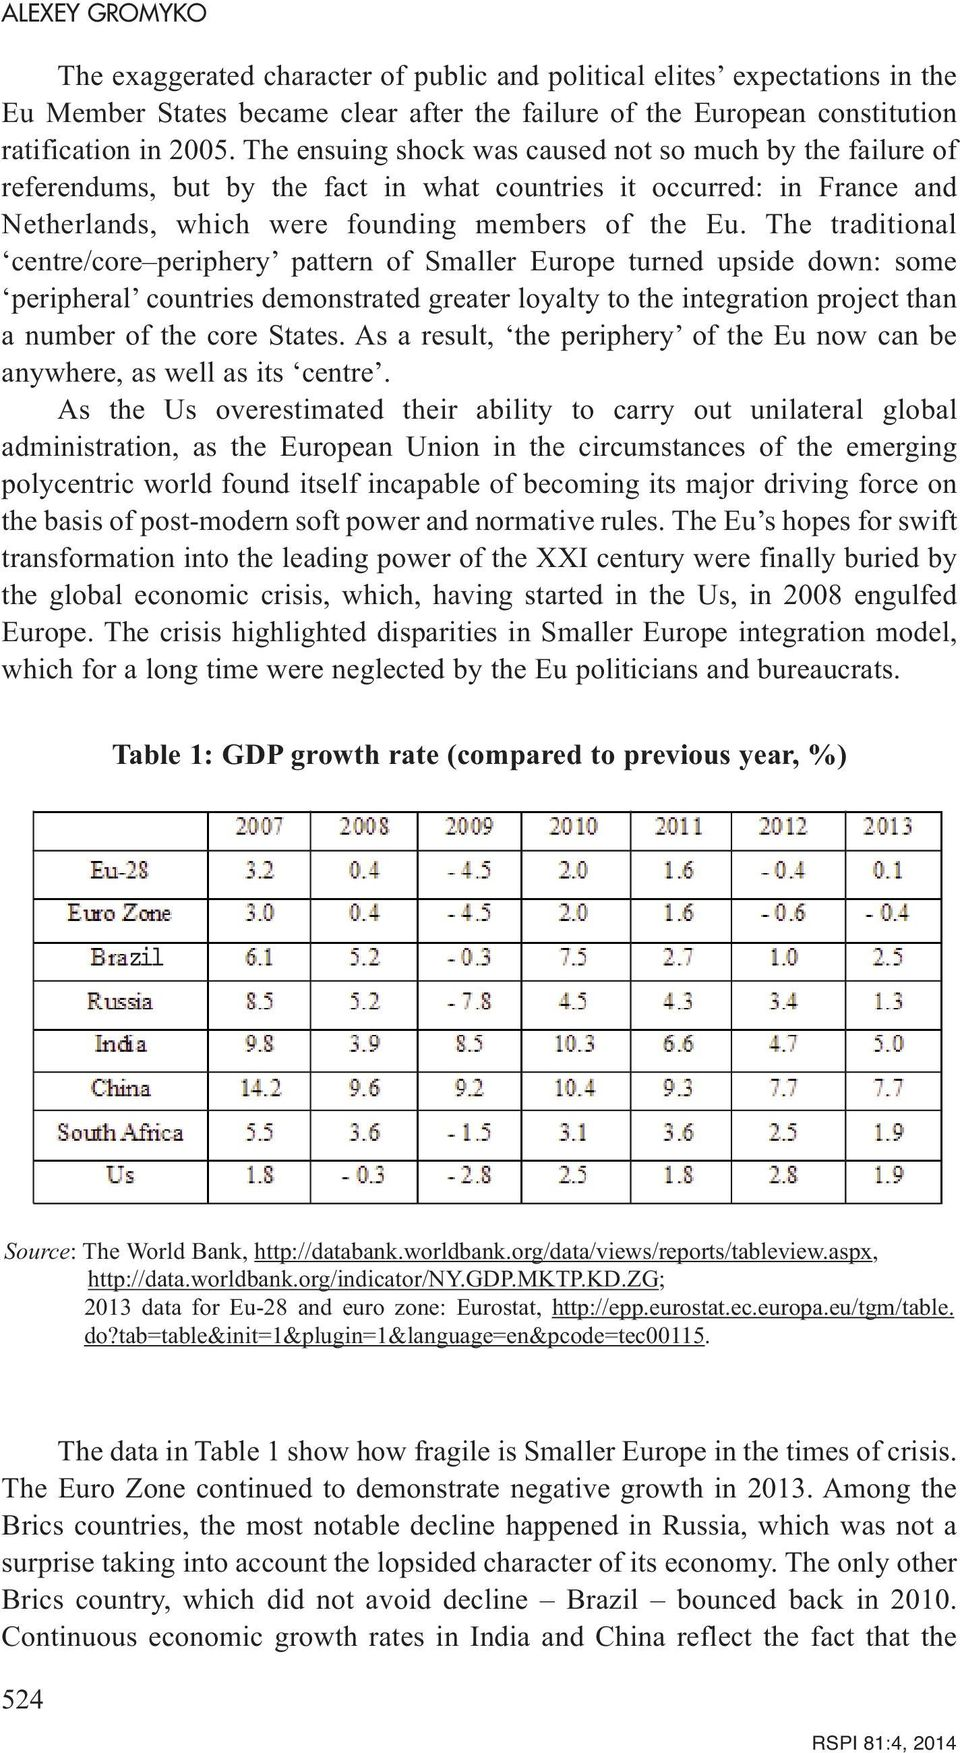 The traditional centre/core periphery pattern of Smaller Europe turned upside down: some peripheral countries demonstrated greater loyalty to the integration project than a number of the core States.